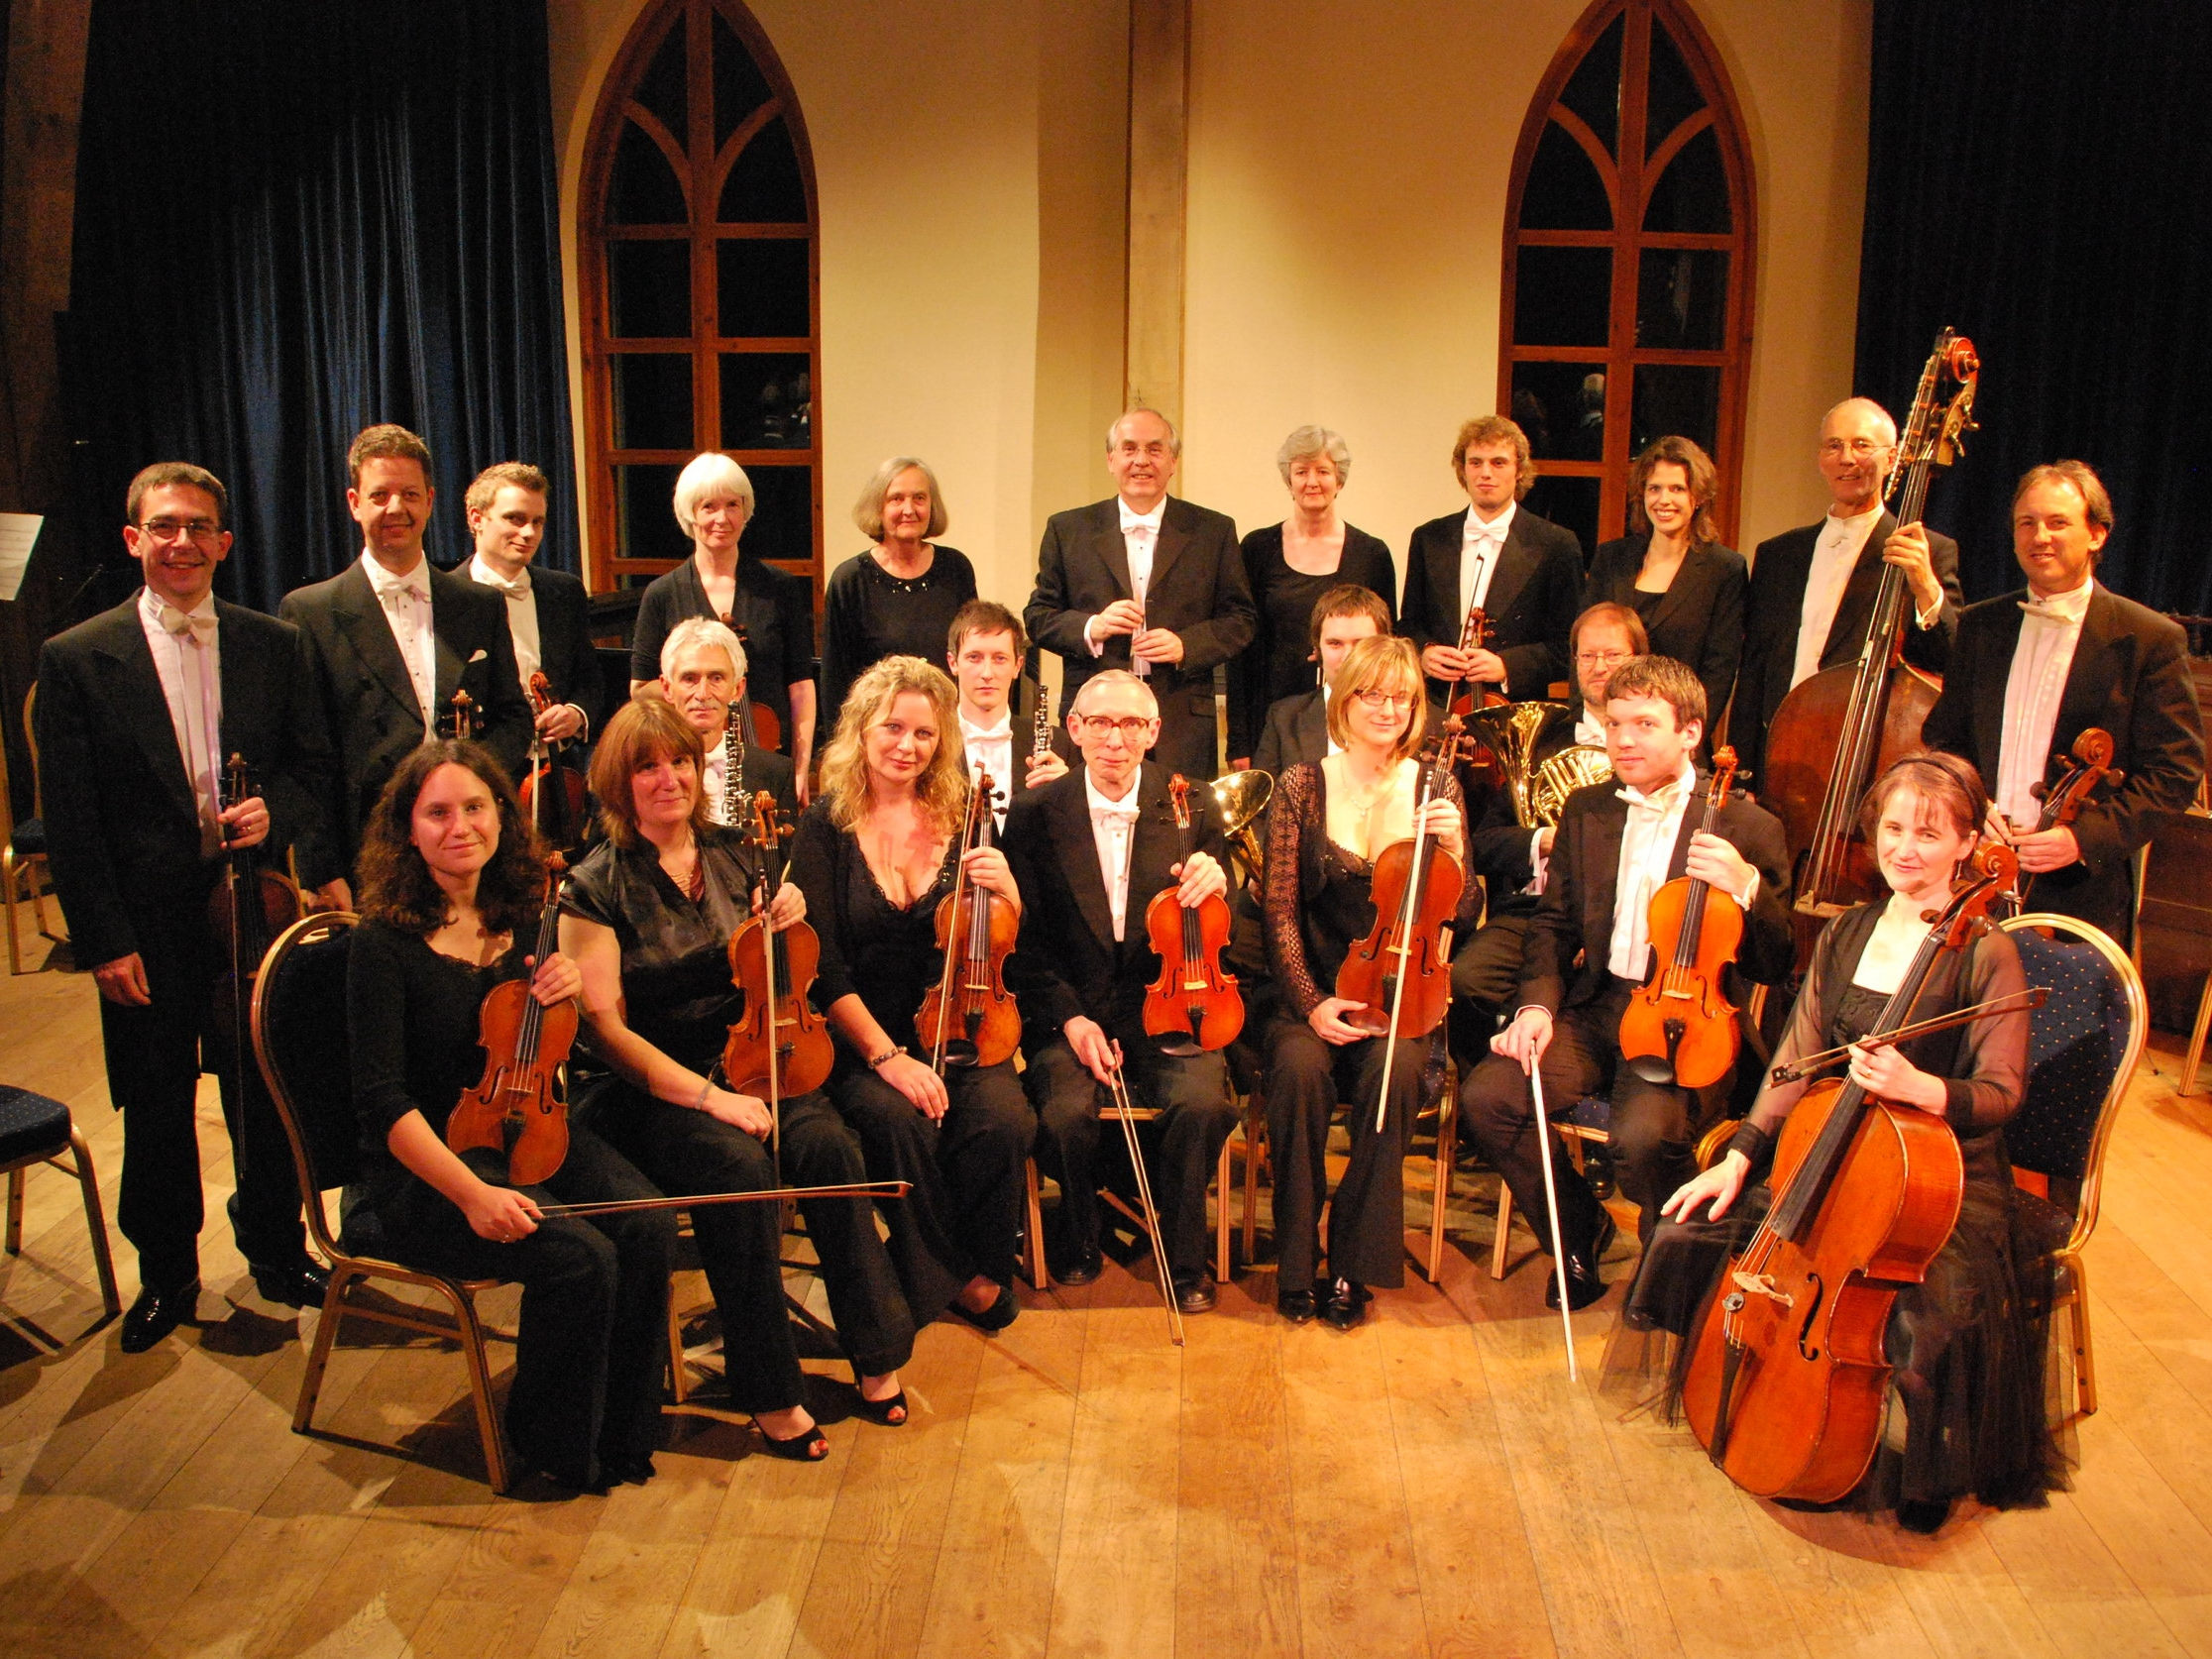 http://www.beaumarisfestival.org/2017-programme/#/jeremy-huw-williams-welsh-chamber-orchestra-anthony-hose/